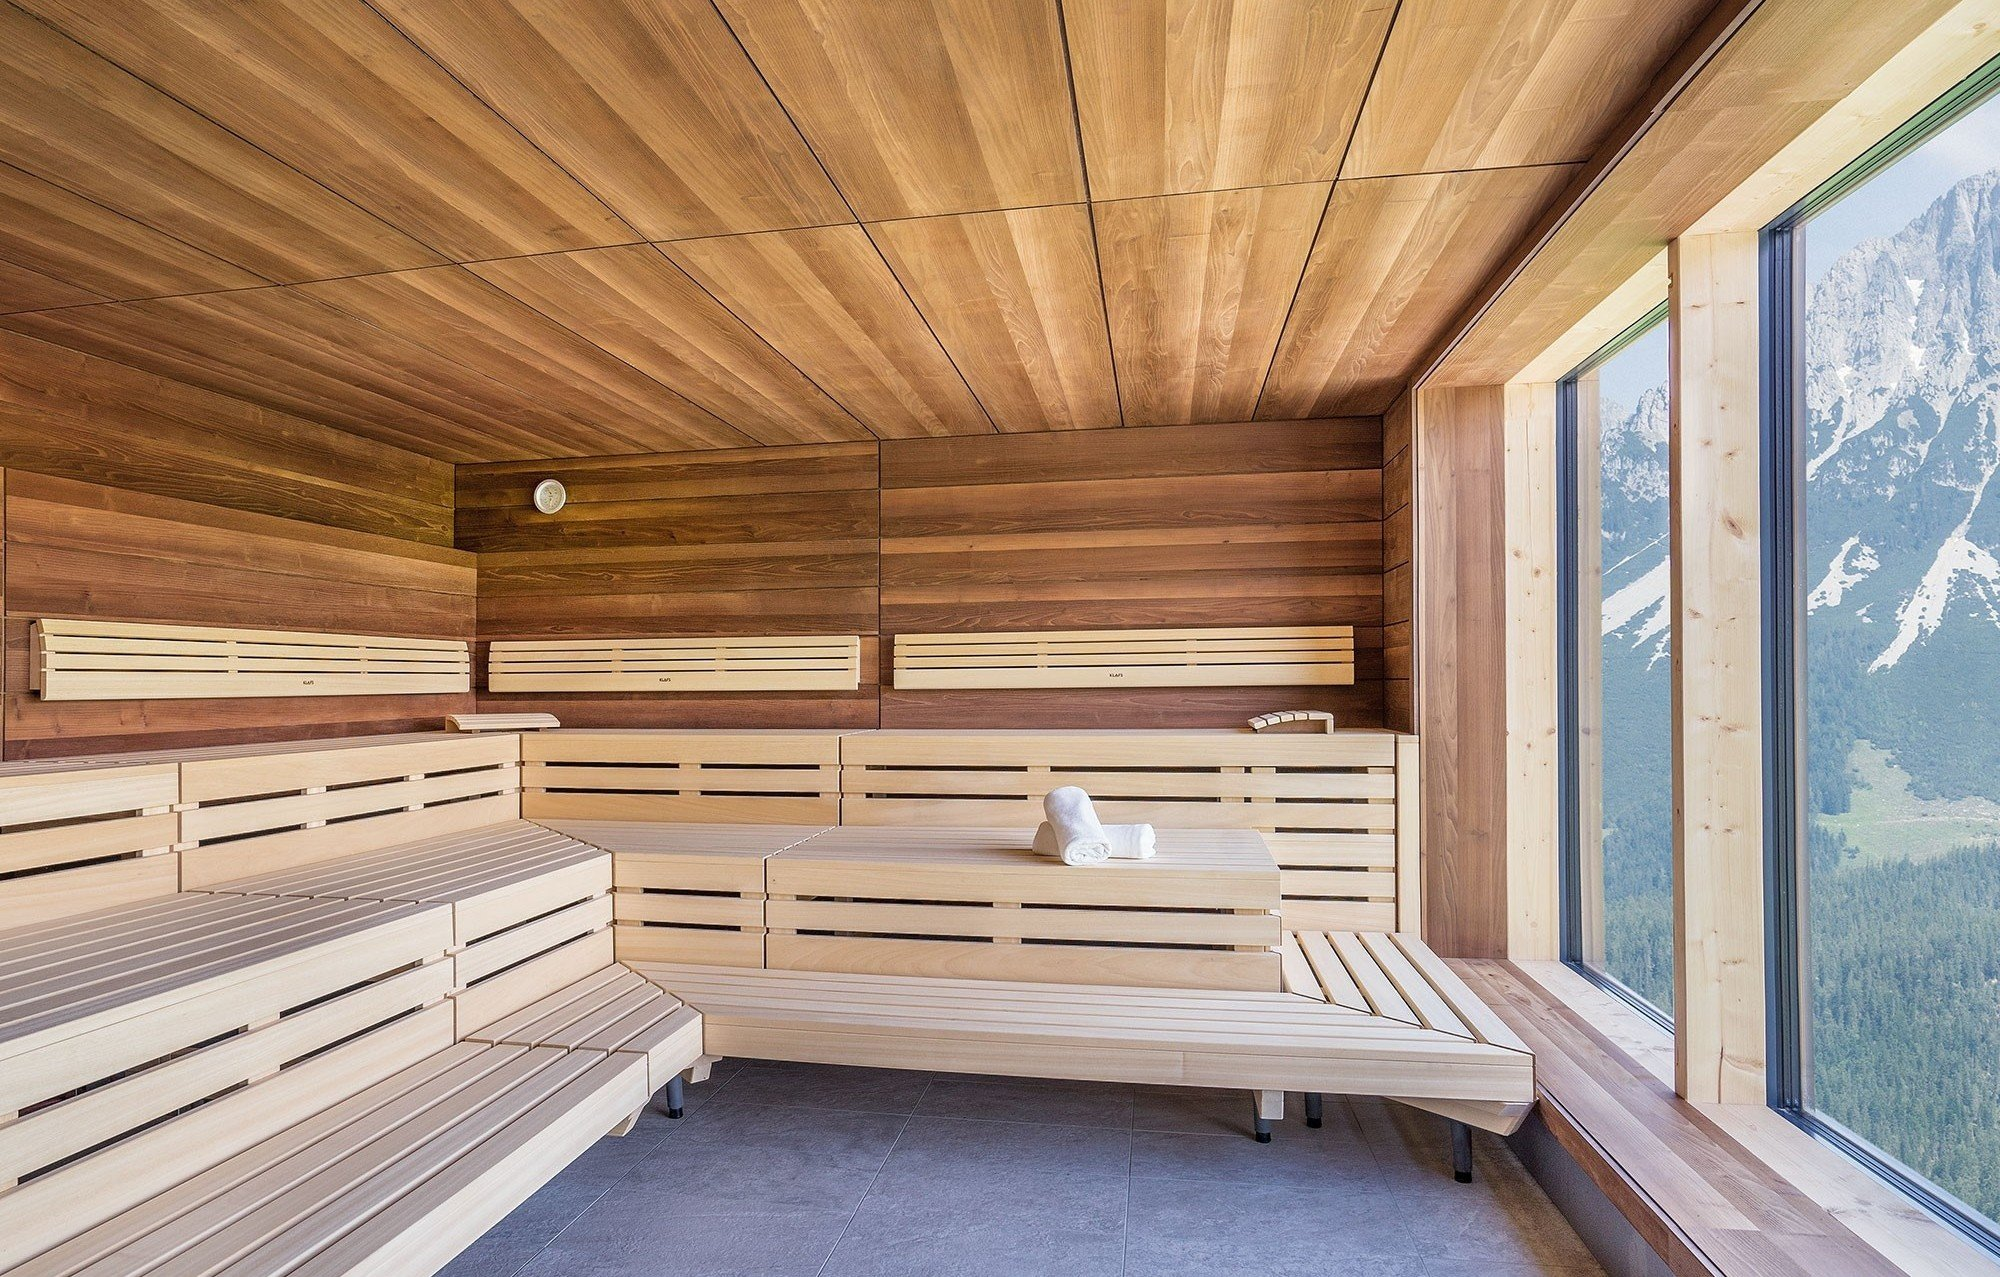 Sauna with towel at bank, panorma window with view on the mountains